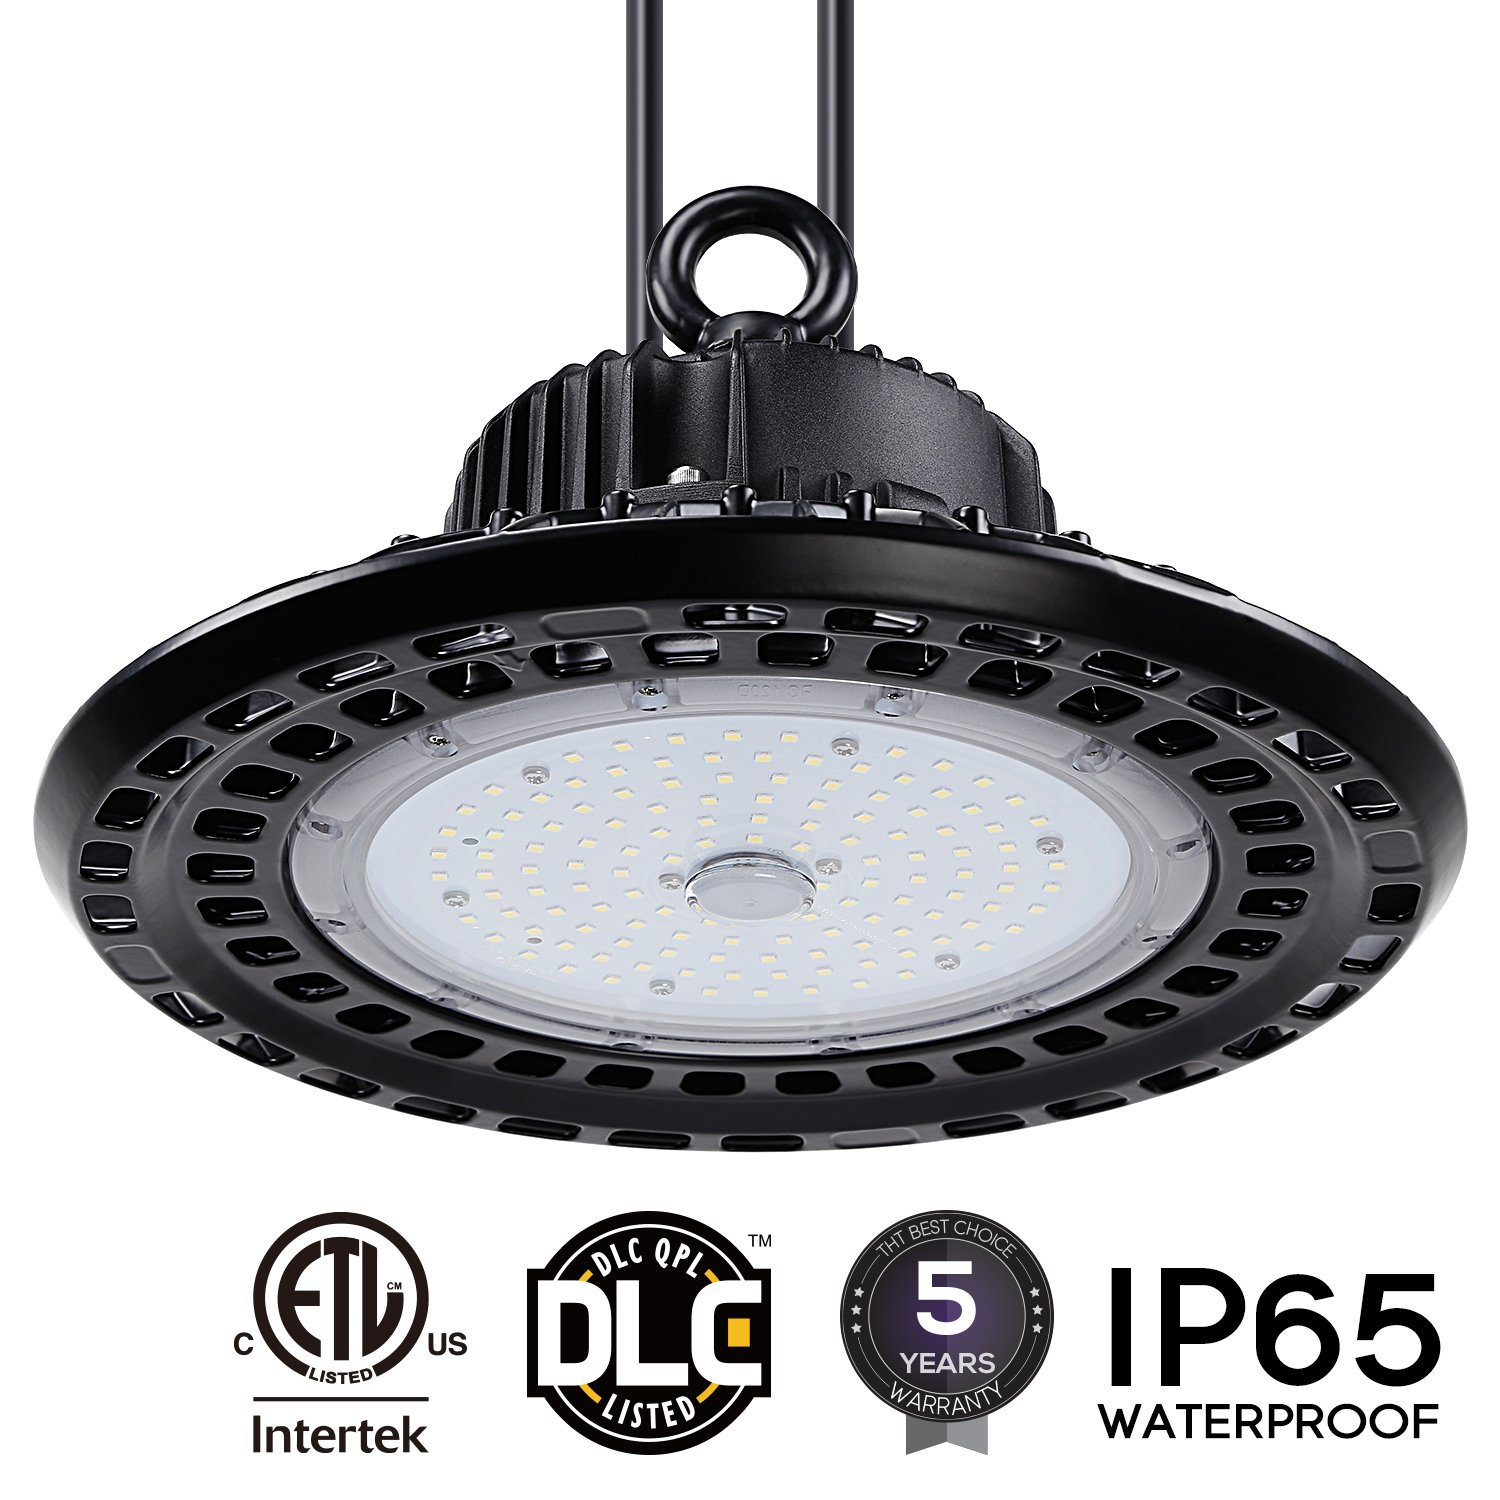 LEONLITE LED UFO High Bay Light, 14,300lm Ultra Bright, 100W (400W MHL/HID Equiv.), ETL & DLC Listed, Commercial/Industrial Professional Lighting, 5 Years Warranty